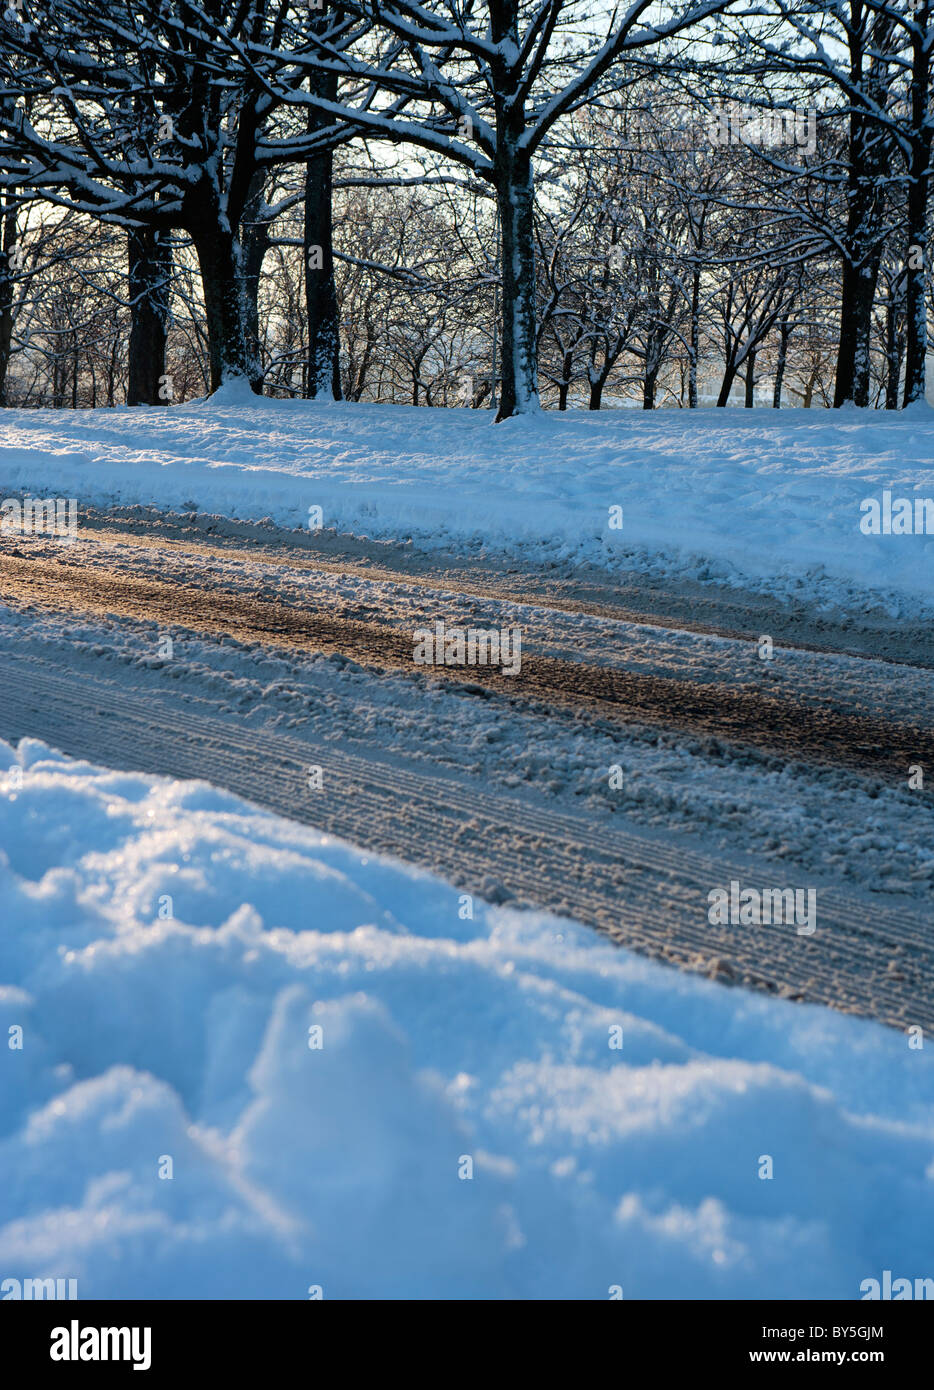 SLIPPERY ROAD IN WINTER SNOW - Stock Image